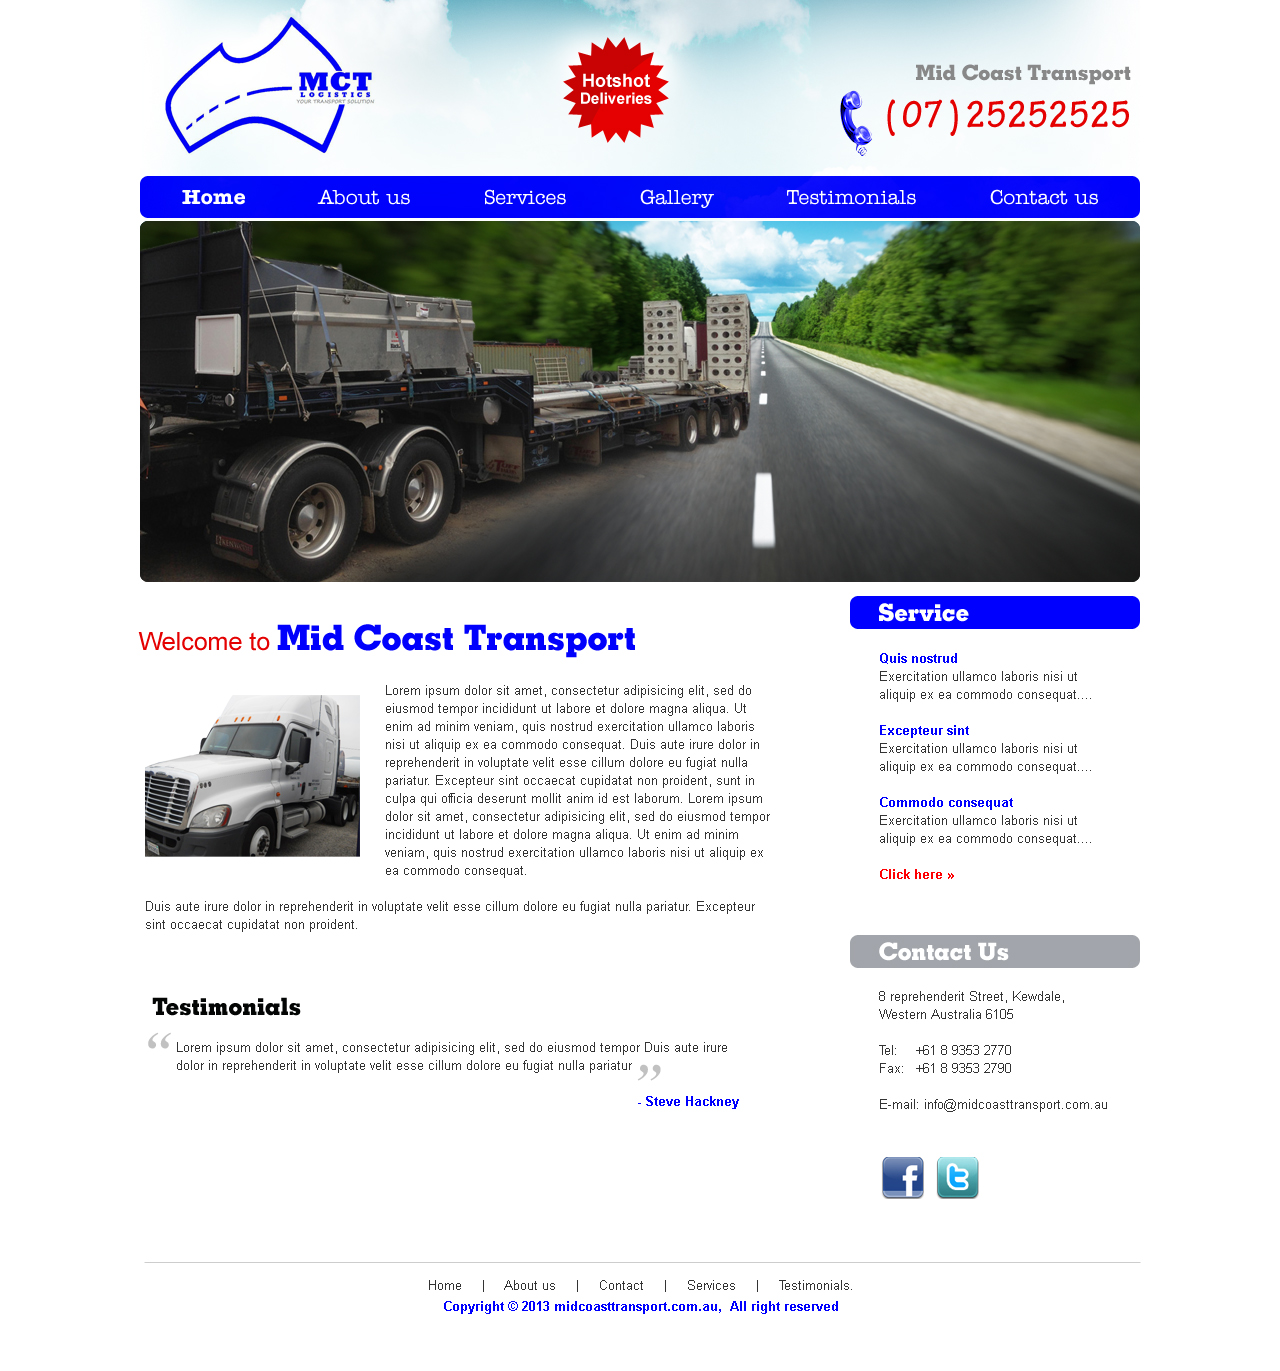 https://webmate.com.au/wp-content/uploads/2016/06/Mid-Coast-Transport-Logistics.jpg